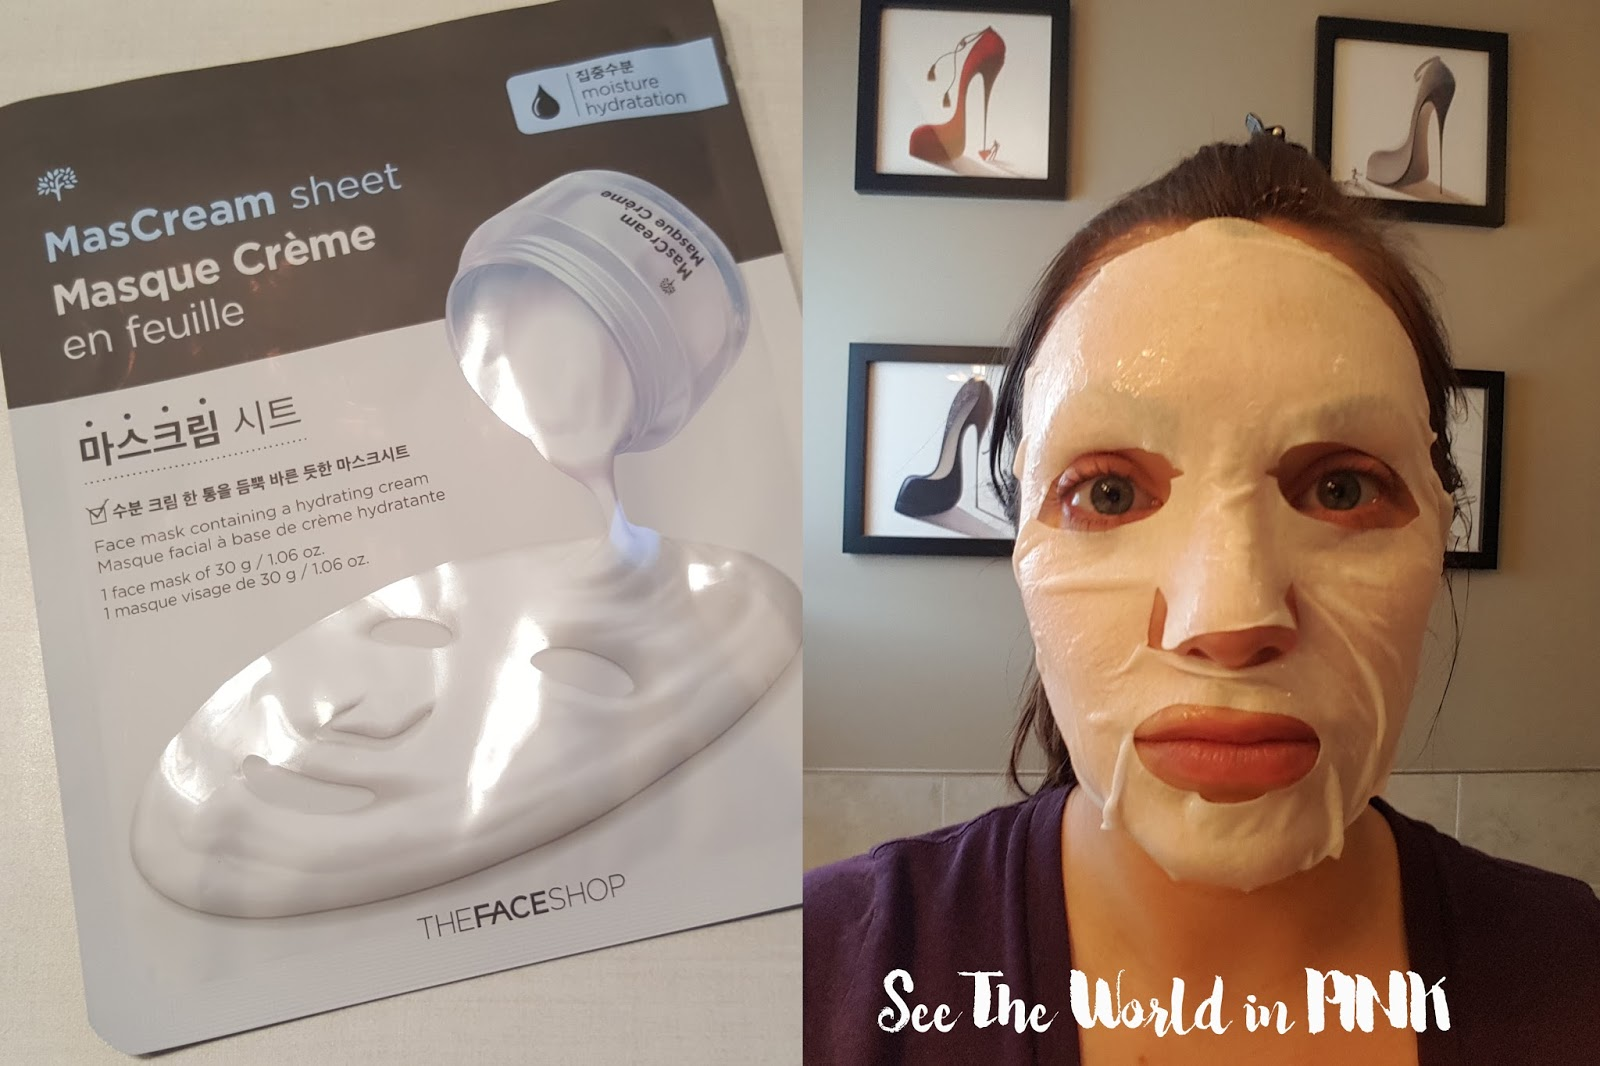 thefaceshop mascream mask sheet